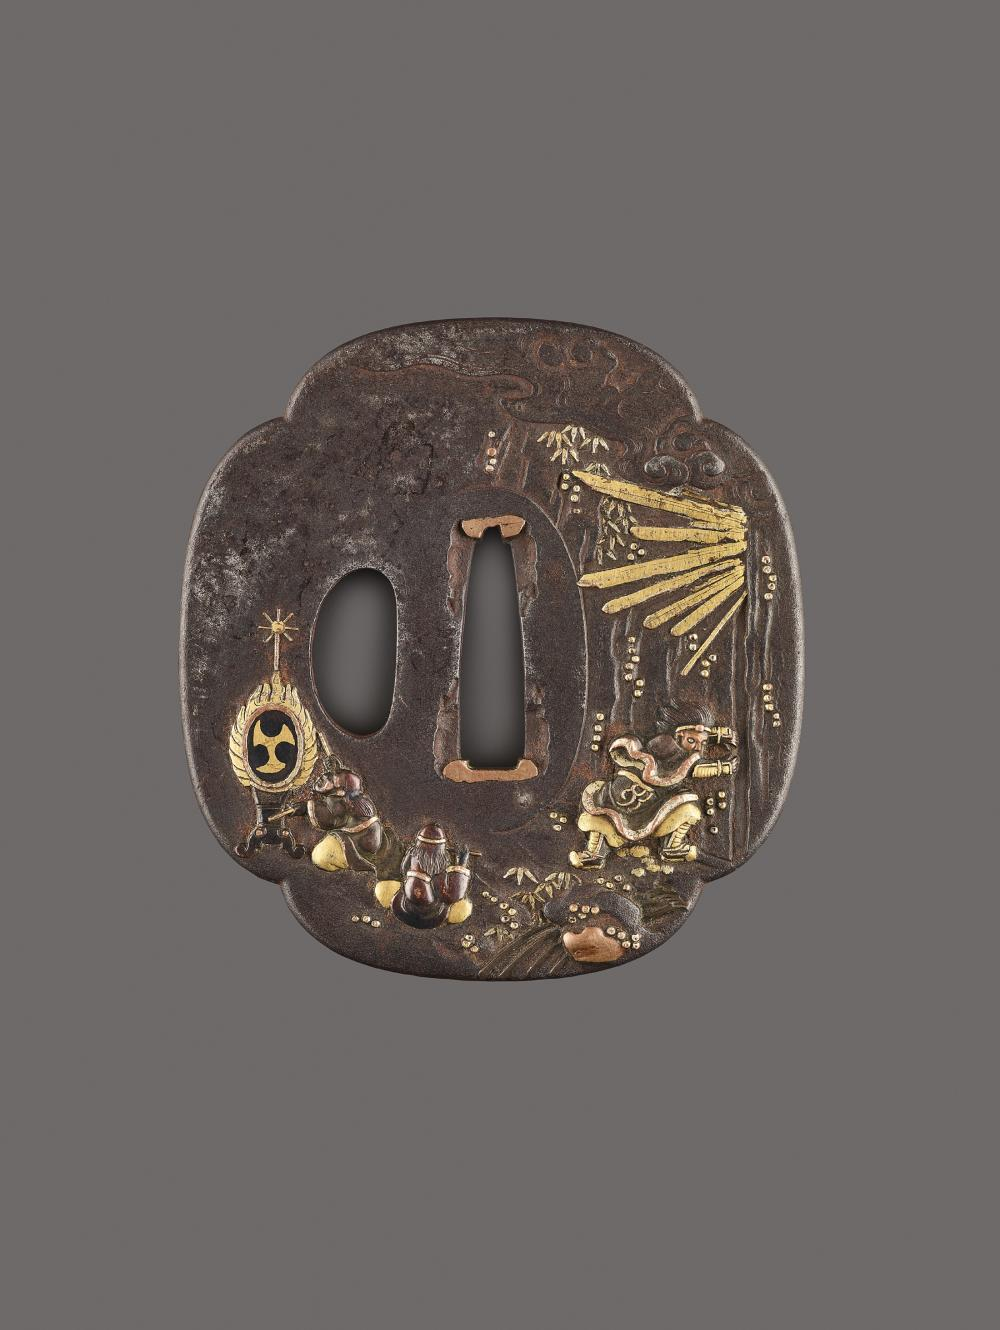 AN IRON, COPPER AND GOLD TSUBA DEPICTING FUDO AND COMPANION